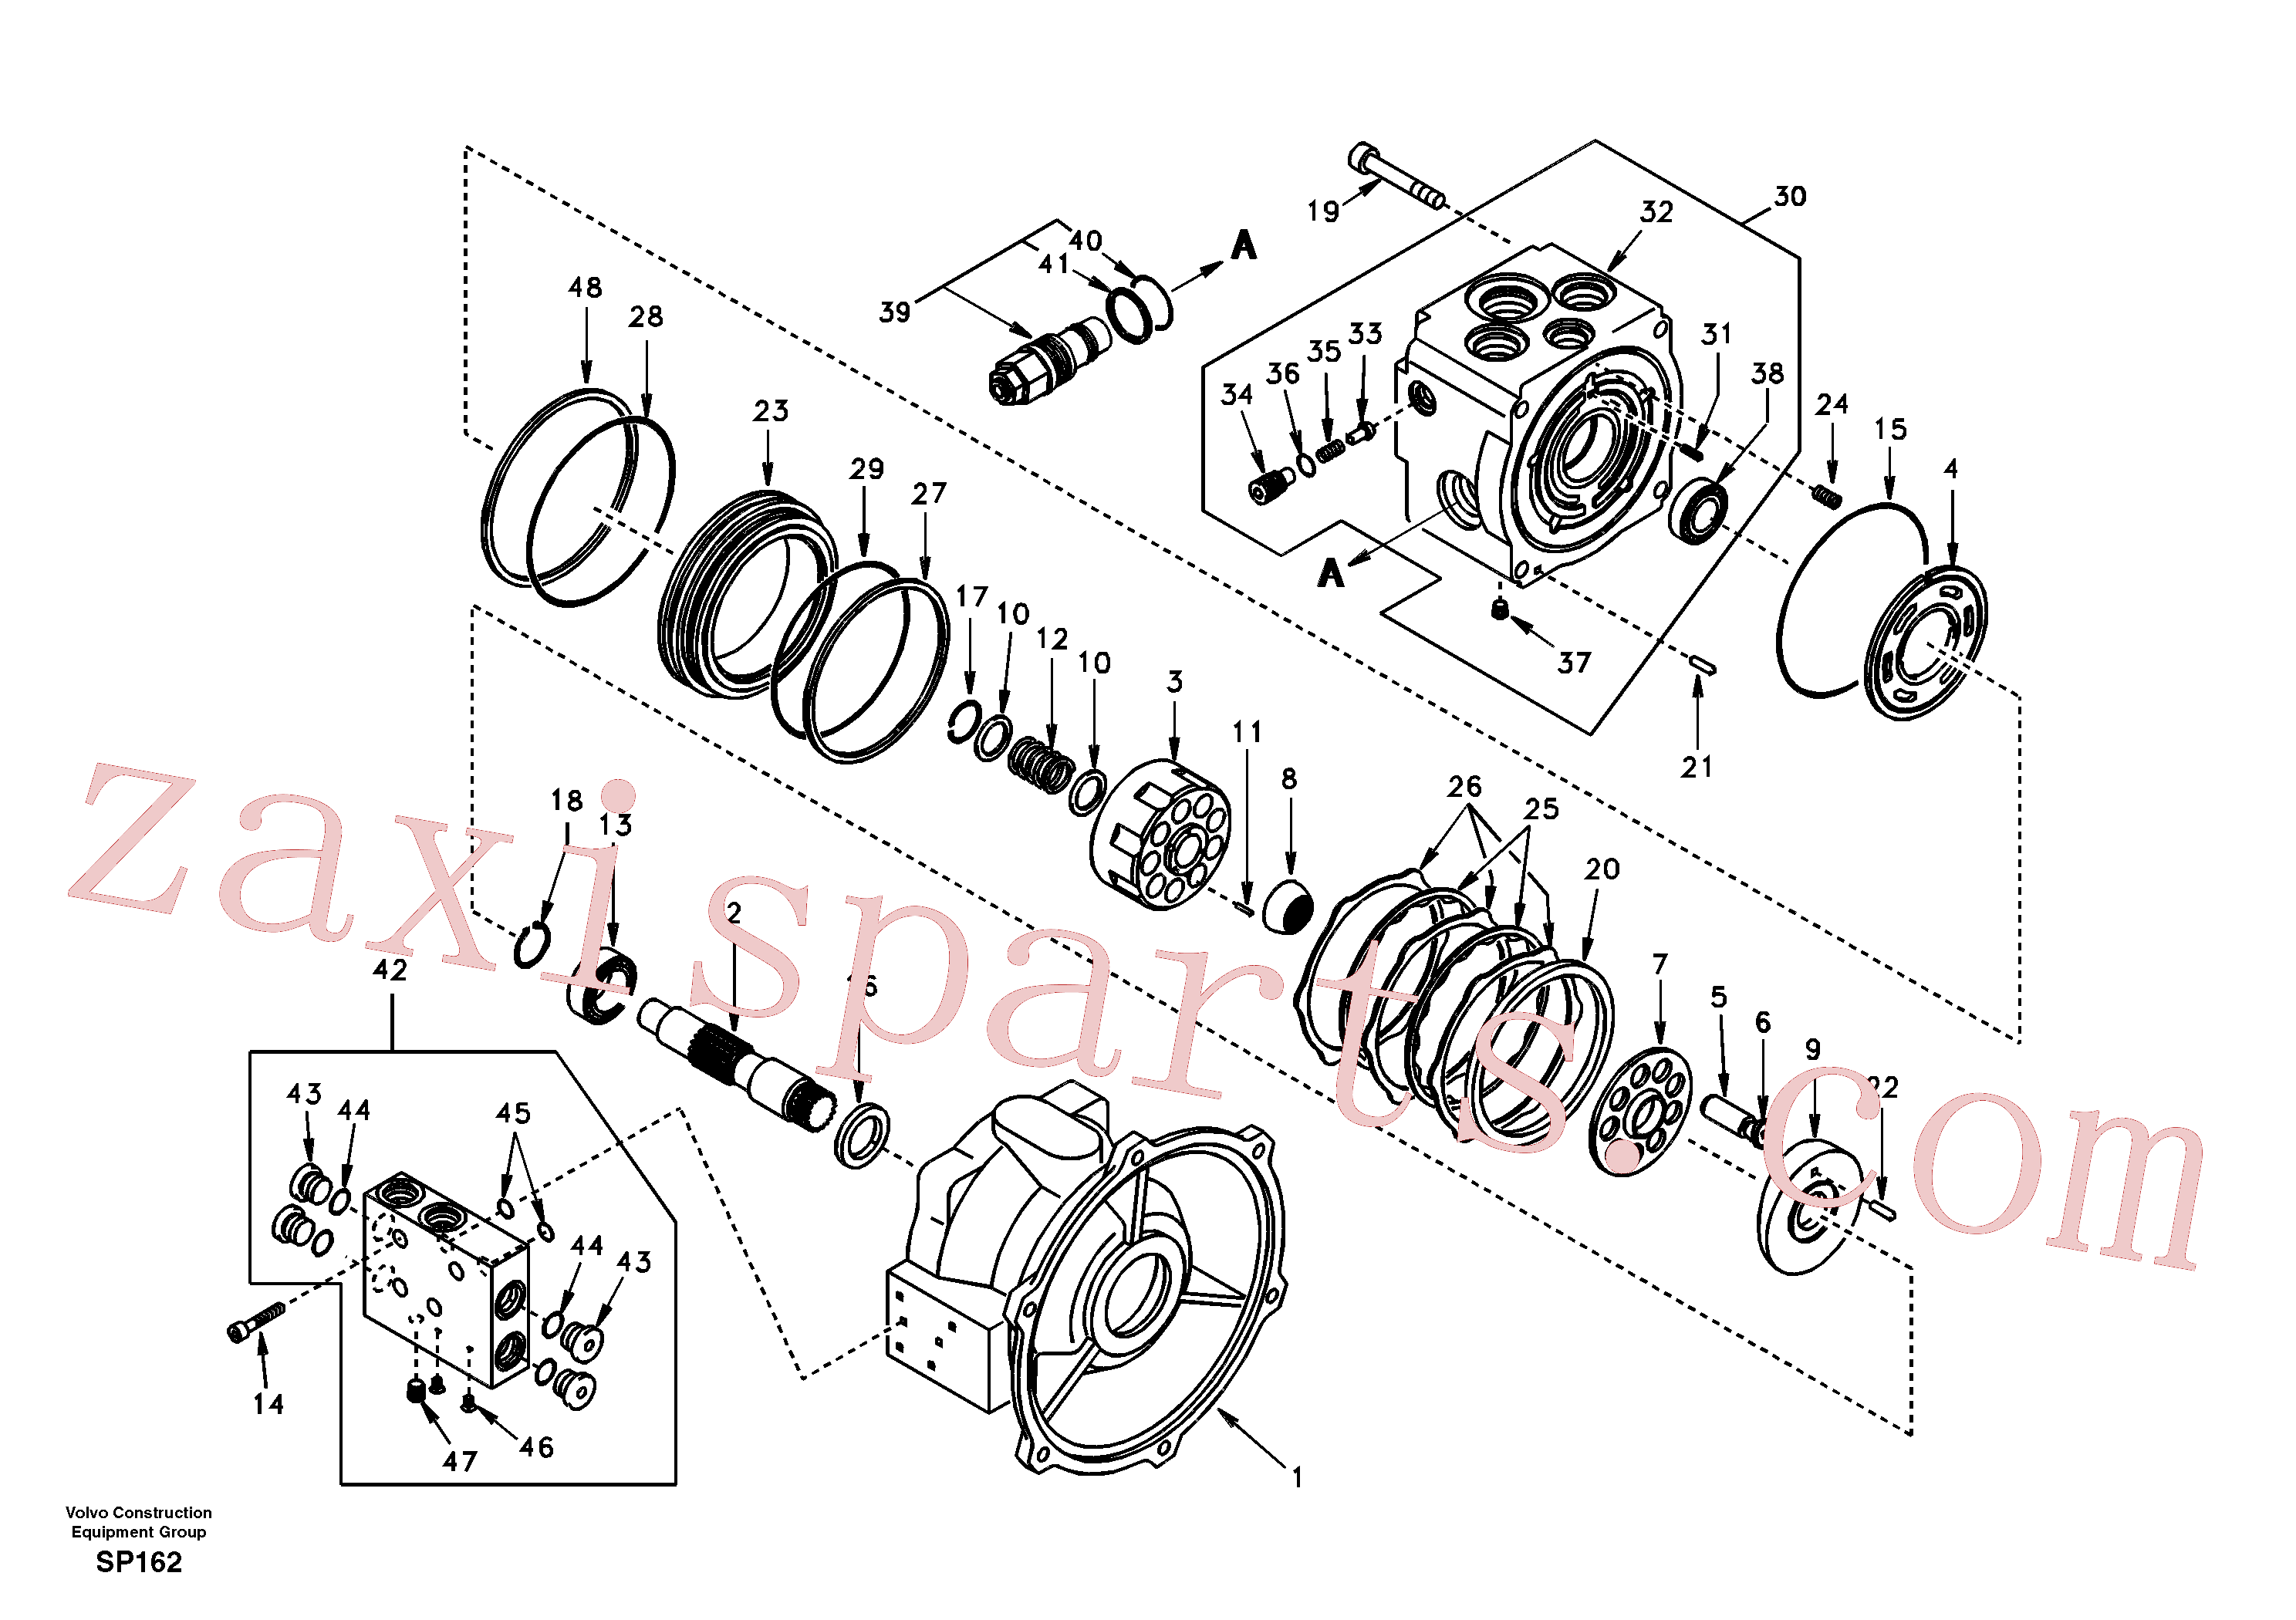 SA8230-31400 for Volvo Swing motor(SP162 assembly)